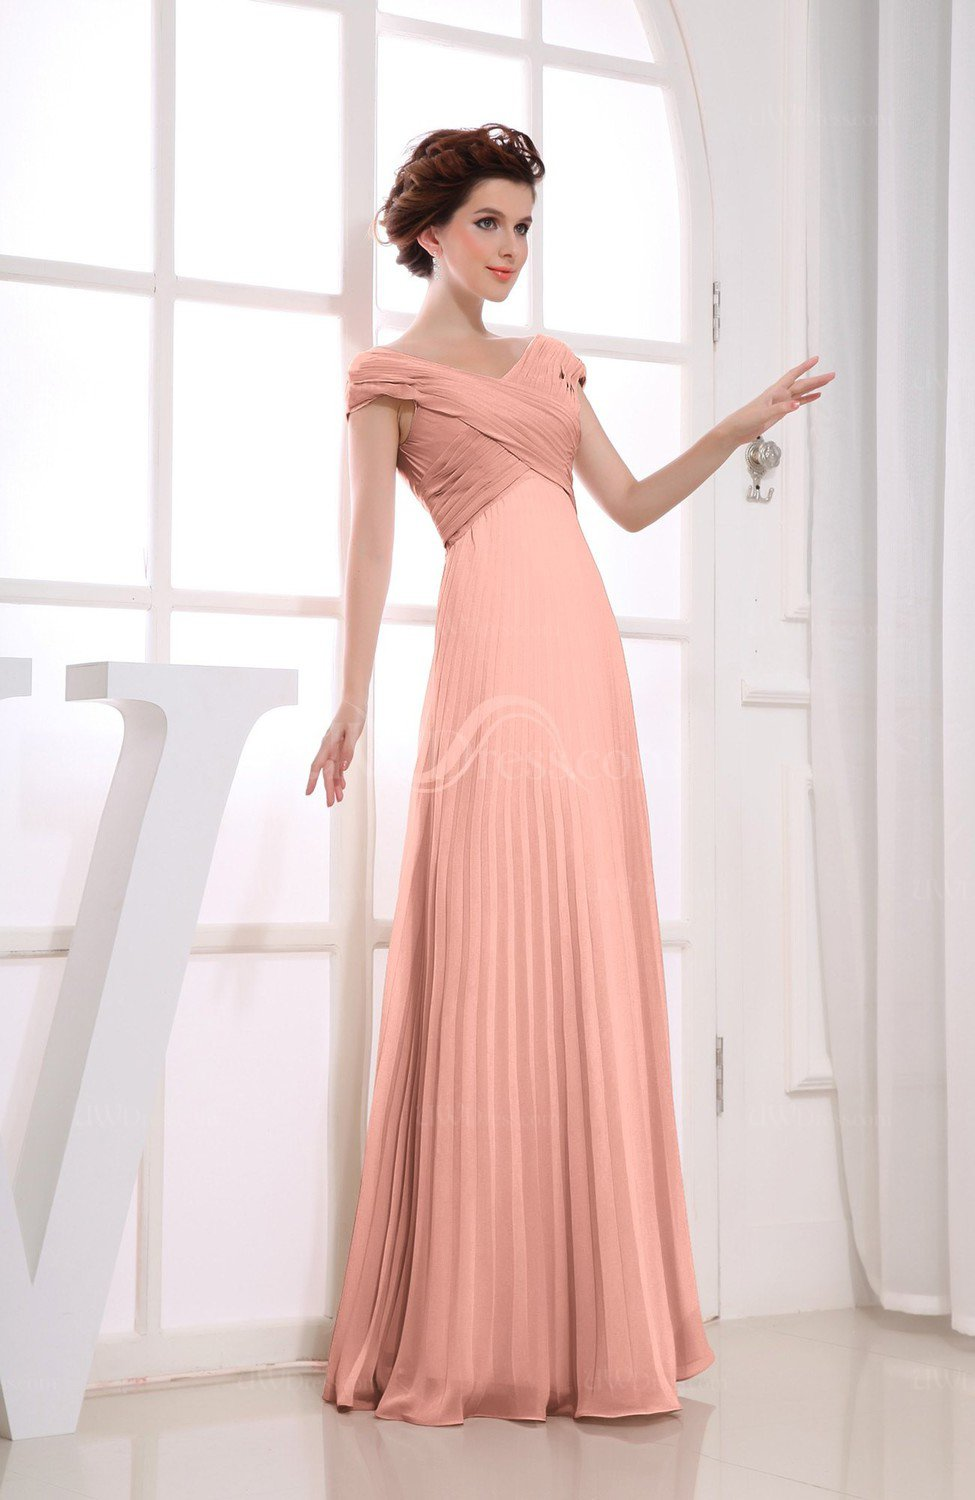 Flowy Floor Length Dress